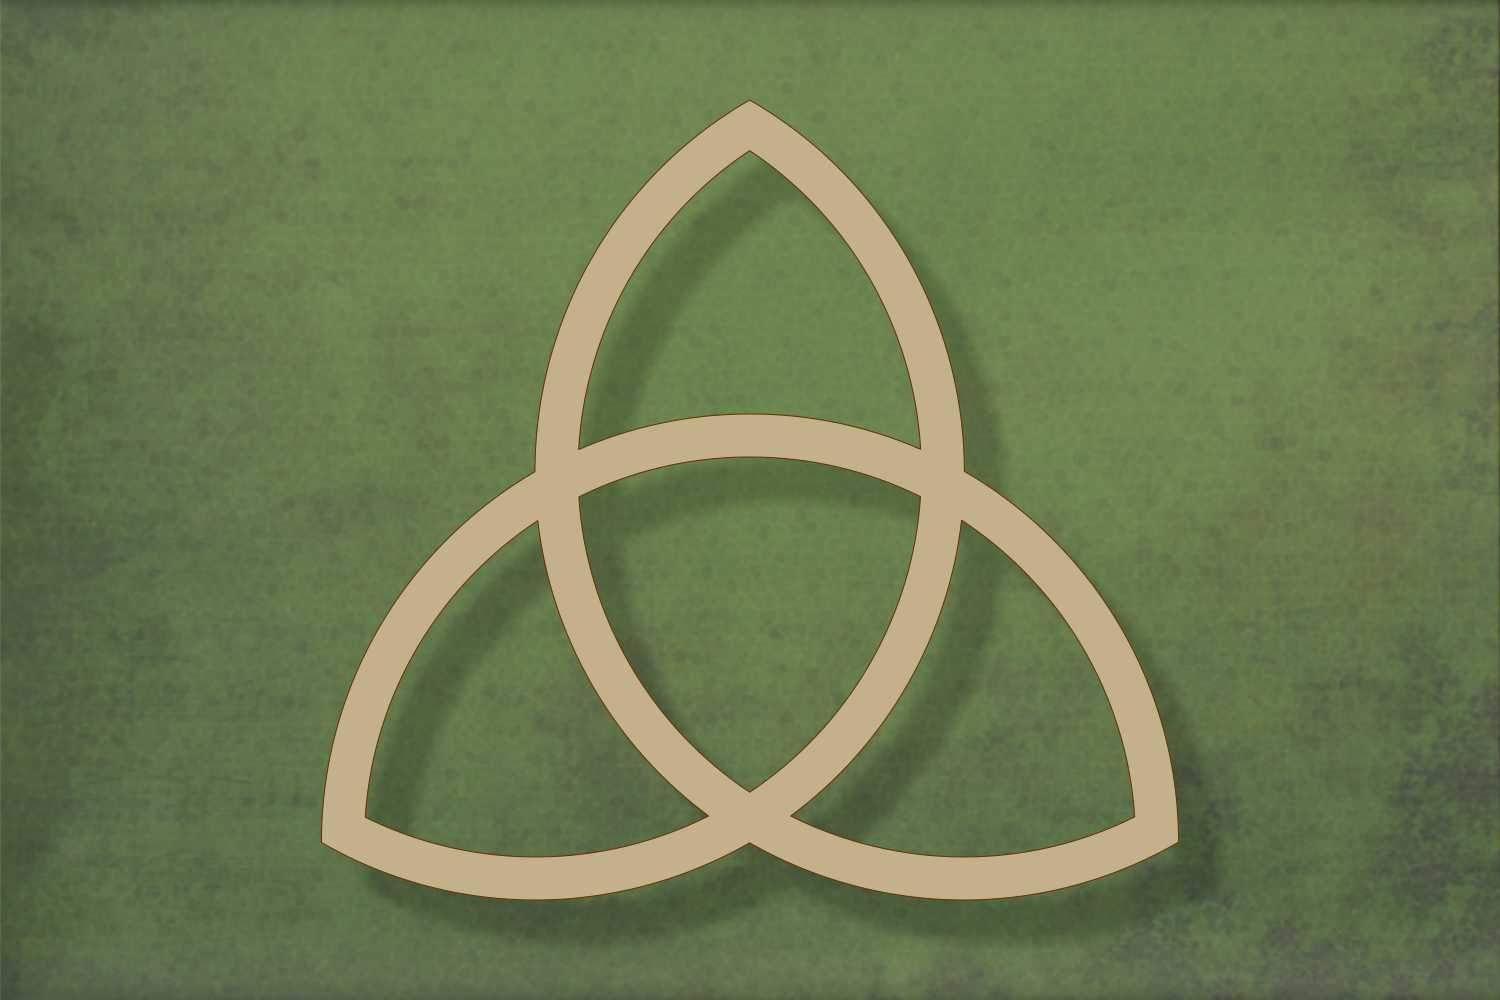 Laser cut, blank wooden Celtic knot shape for craft